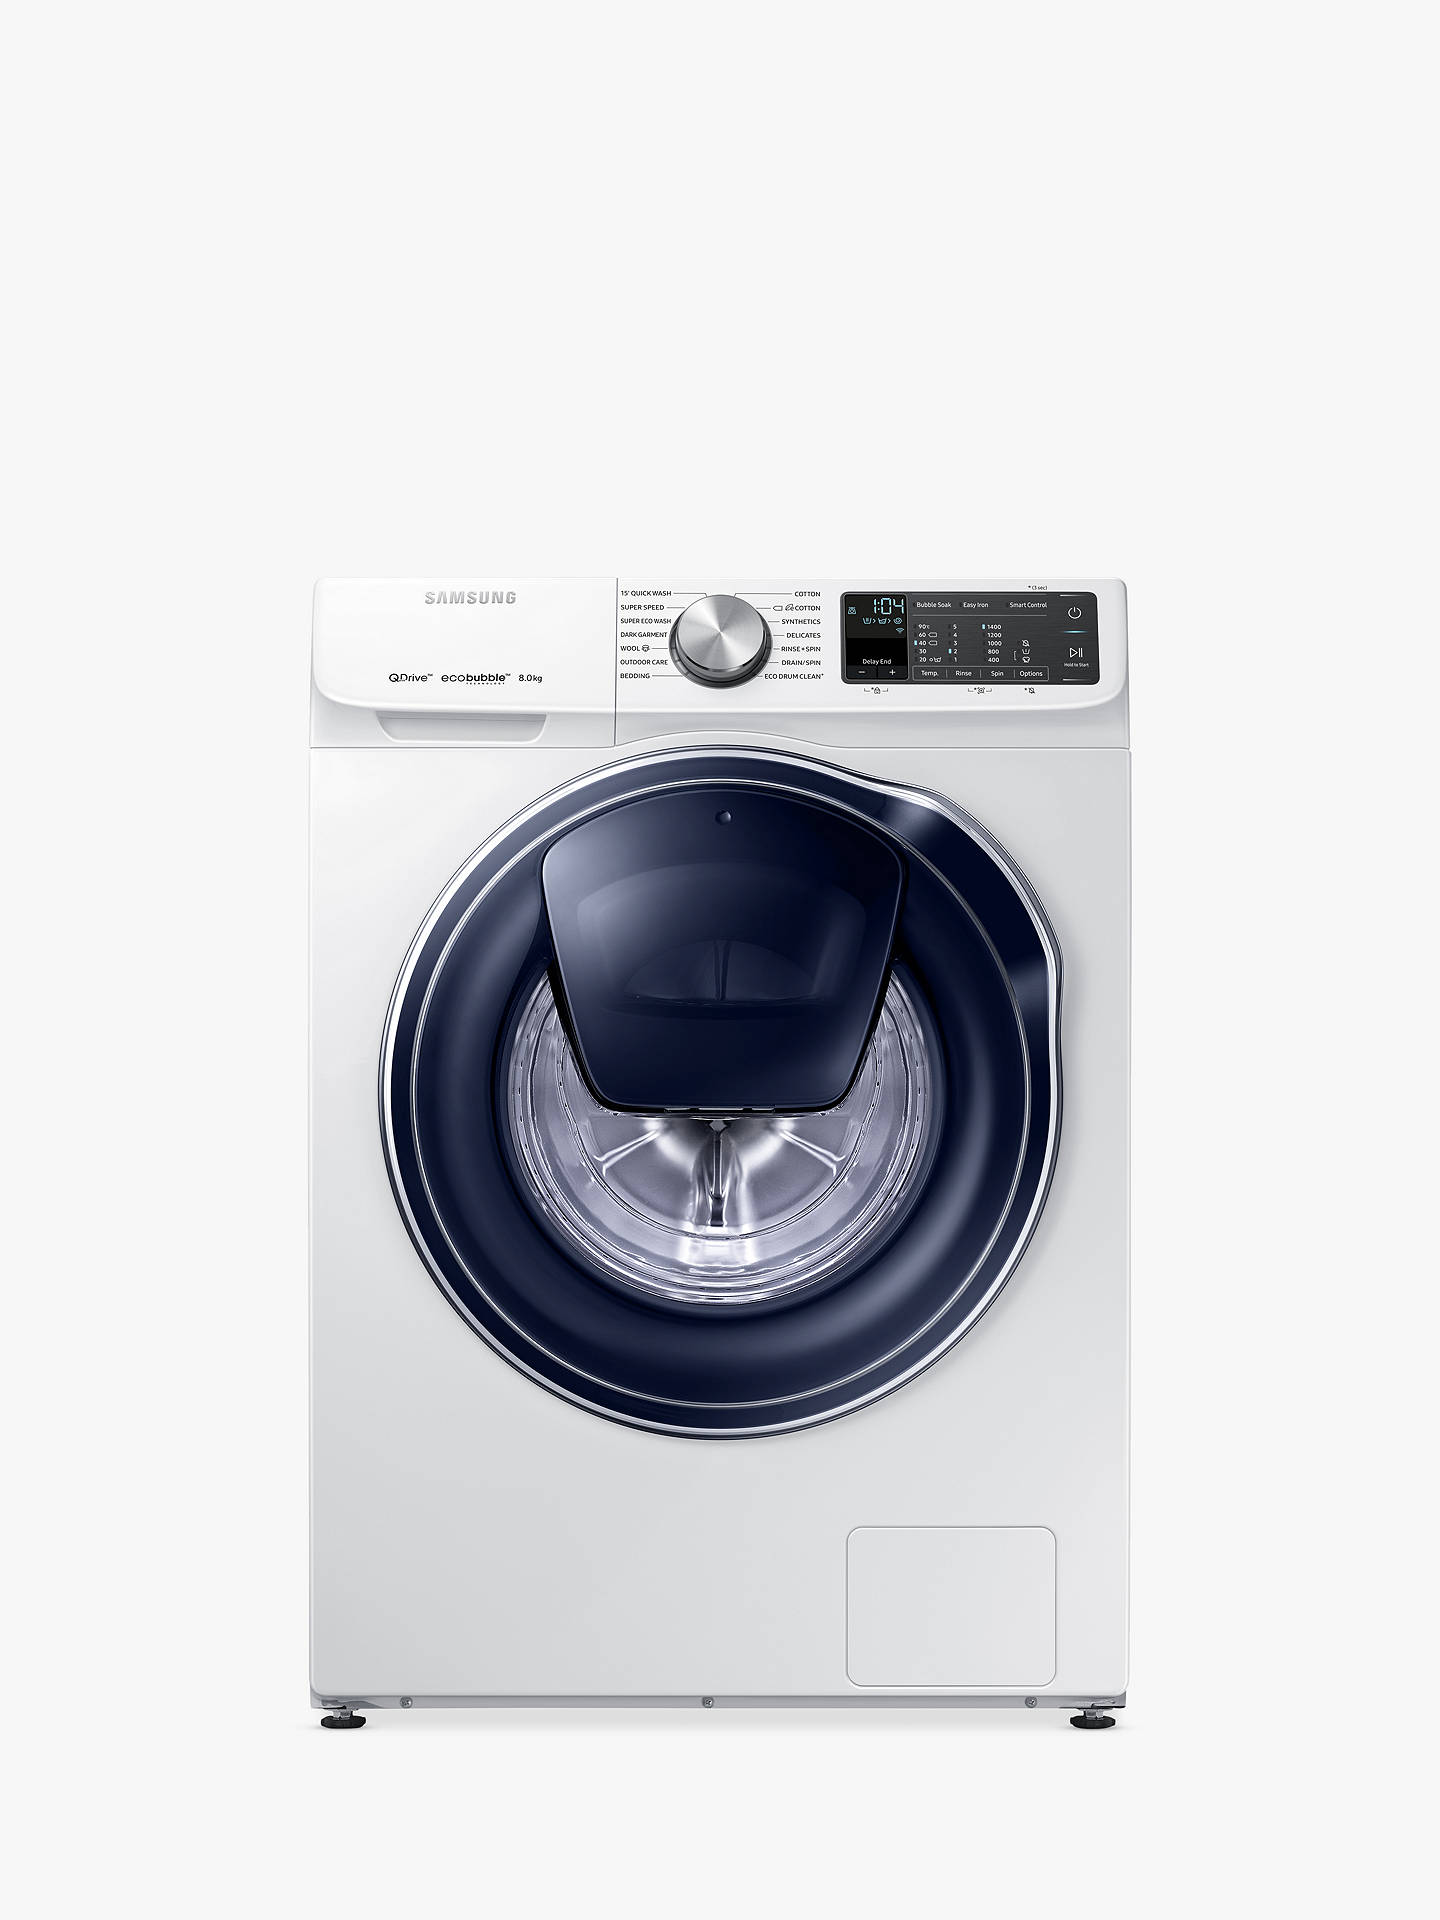 BuySamsung QuickDrive WW80M645OPM/EU Freestanding Washing Machine, 8kg Load, A+++ Energy Rating, 1400rpm Spin, White Online at johnlewis.com